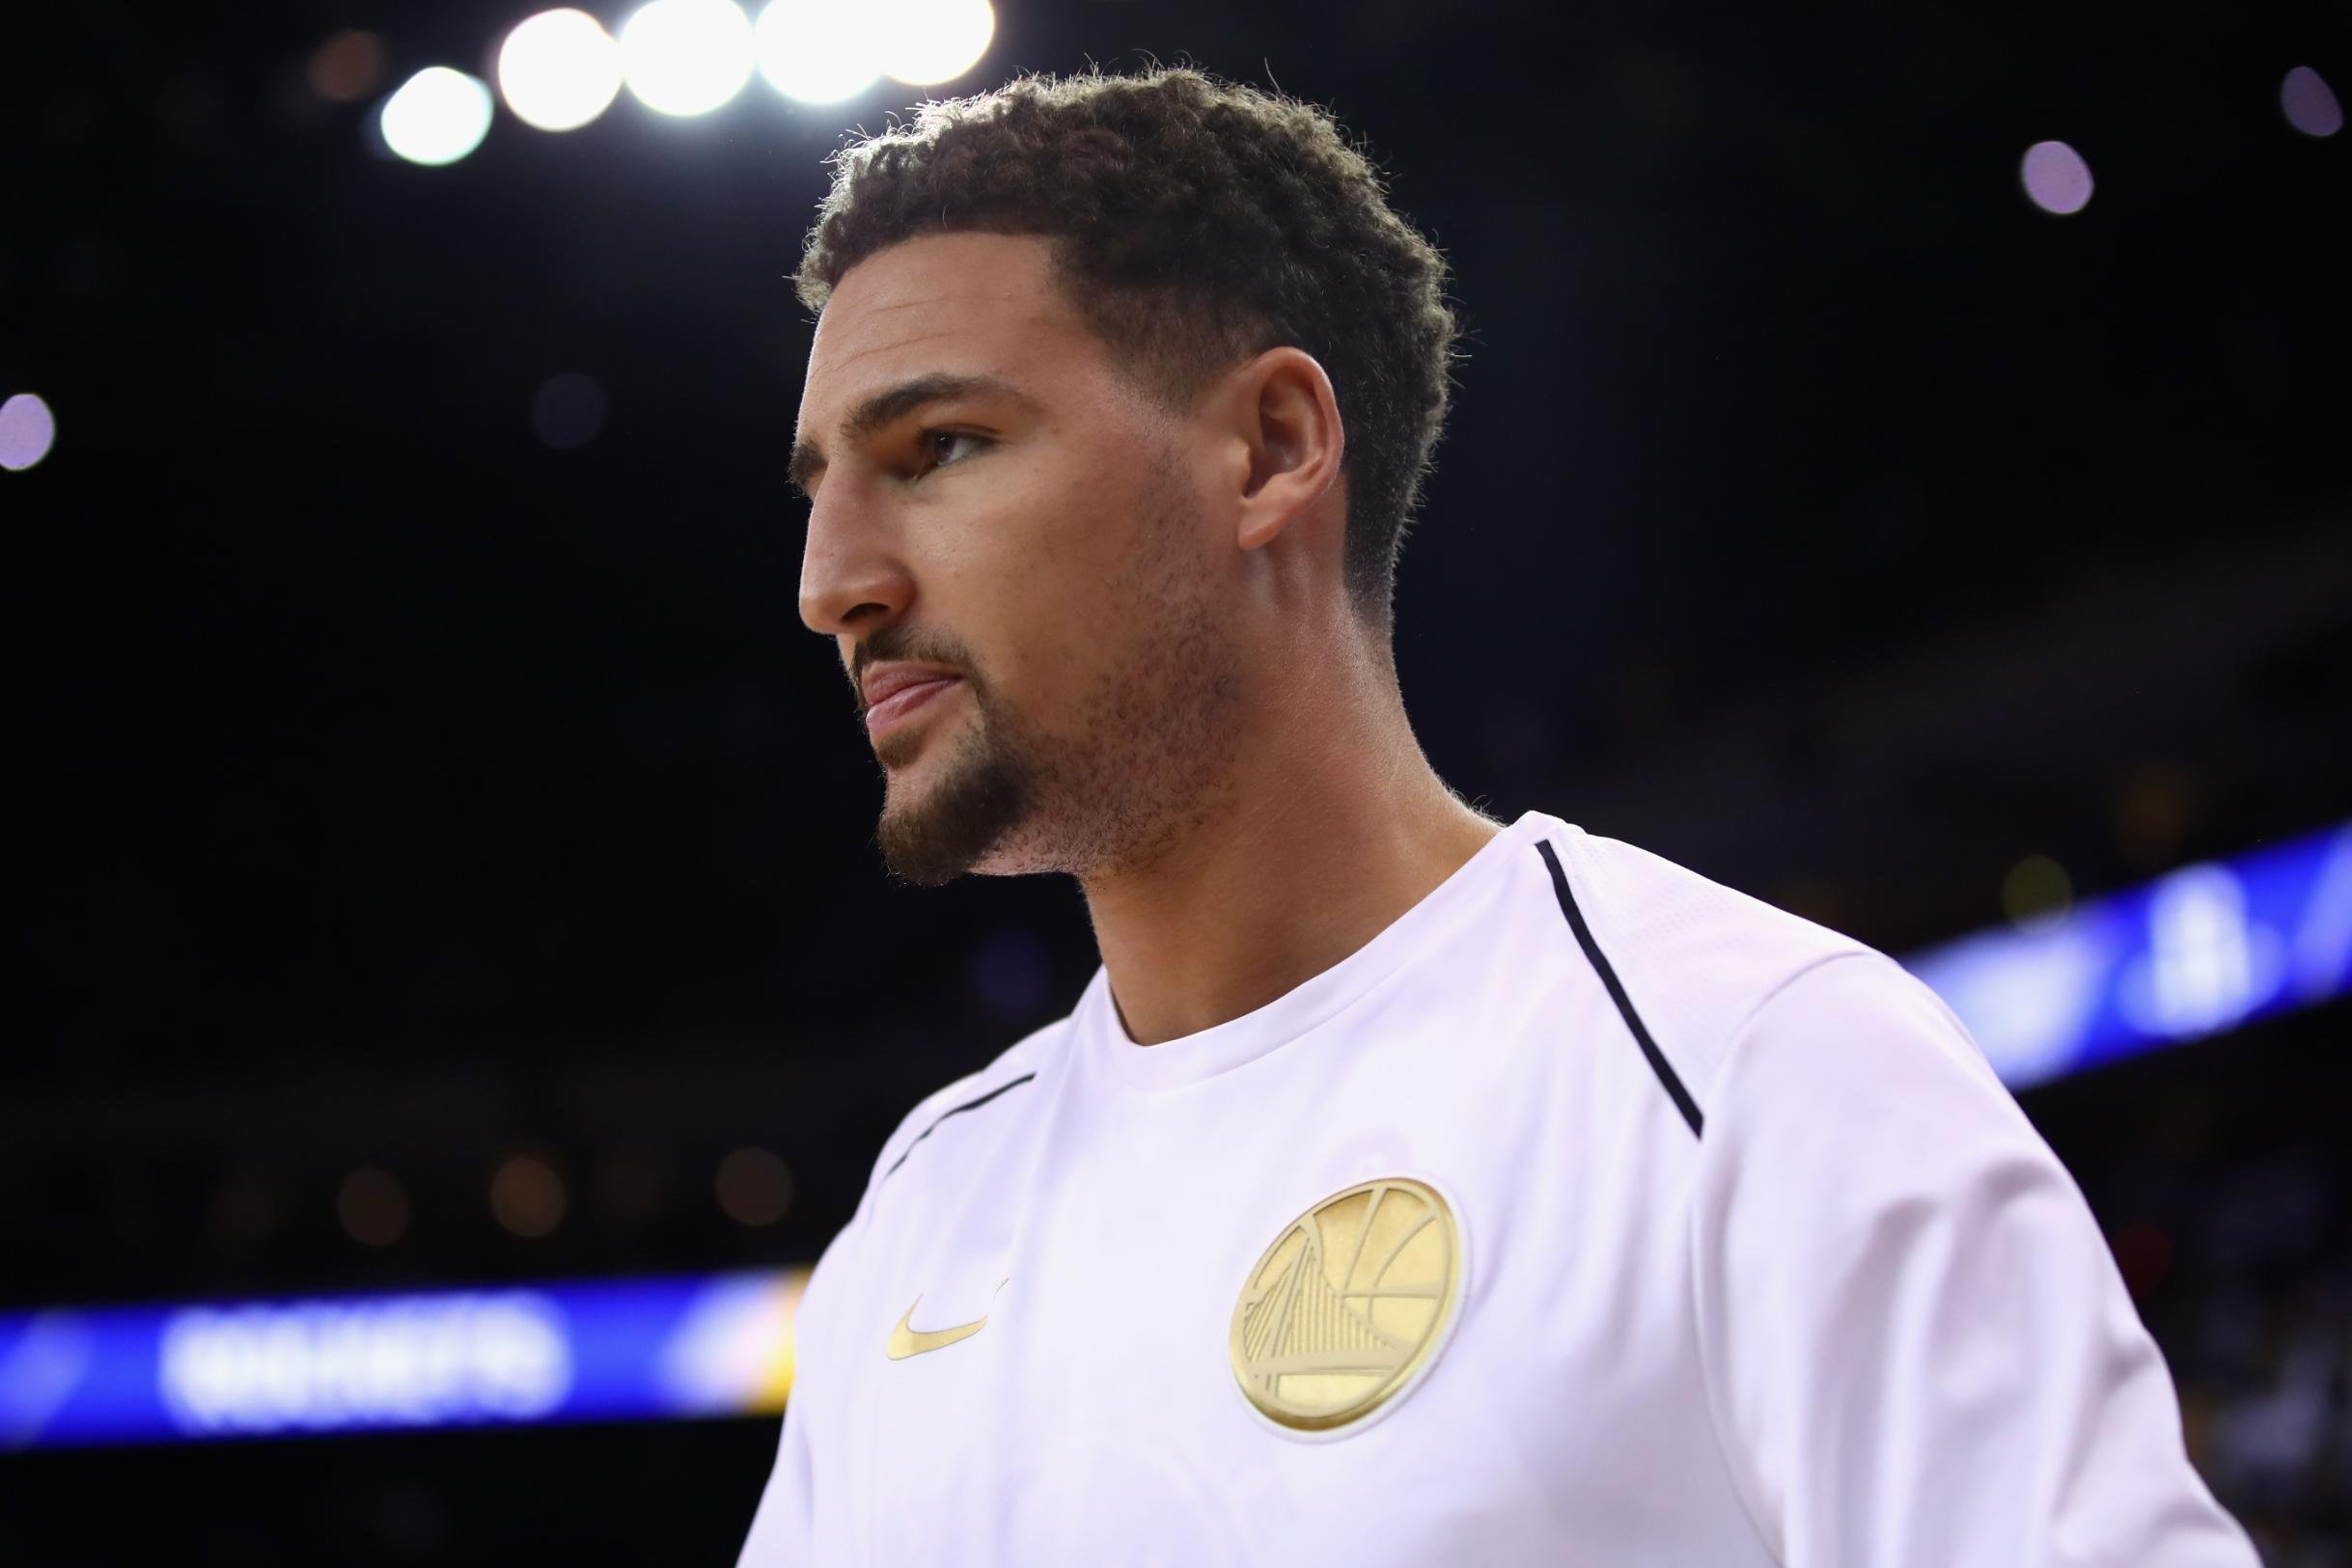 NBA star Klay Thompson, whose family is from the Bahamas, is raising money for hurricane relief in the islands